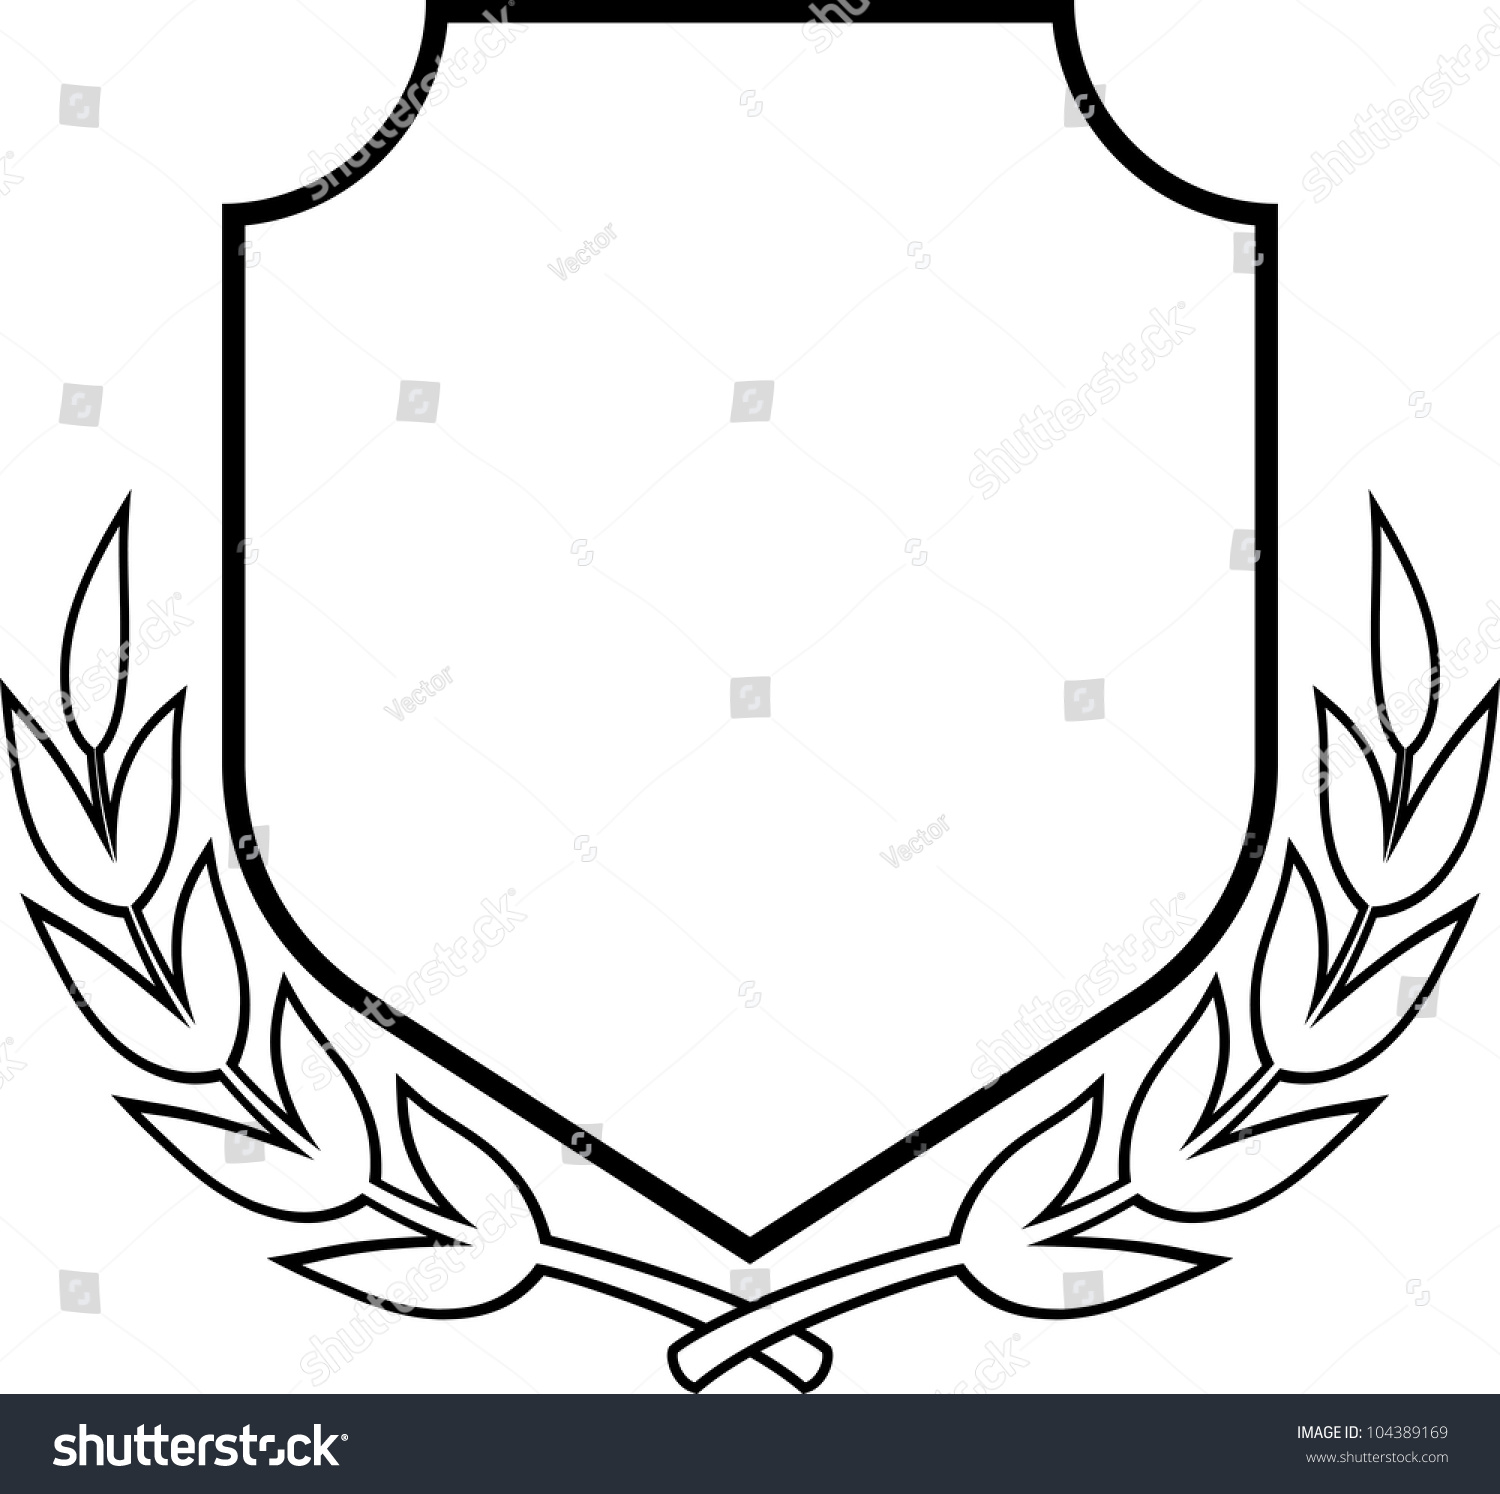 Electrical Plans And Panel Layouts in addition Stock Vector Vector Coat Of Arms Shield And Laurel Wreath Isolated further Watch moreover 585sa3 11 besides Symbols For Guitar. on drafting symbols